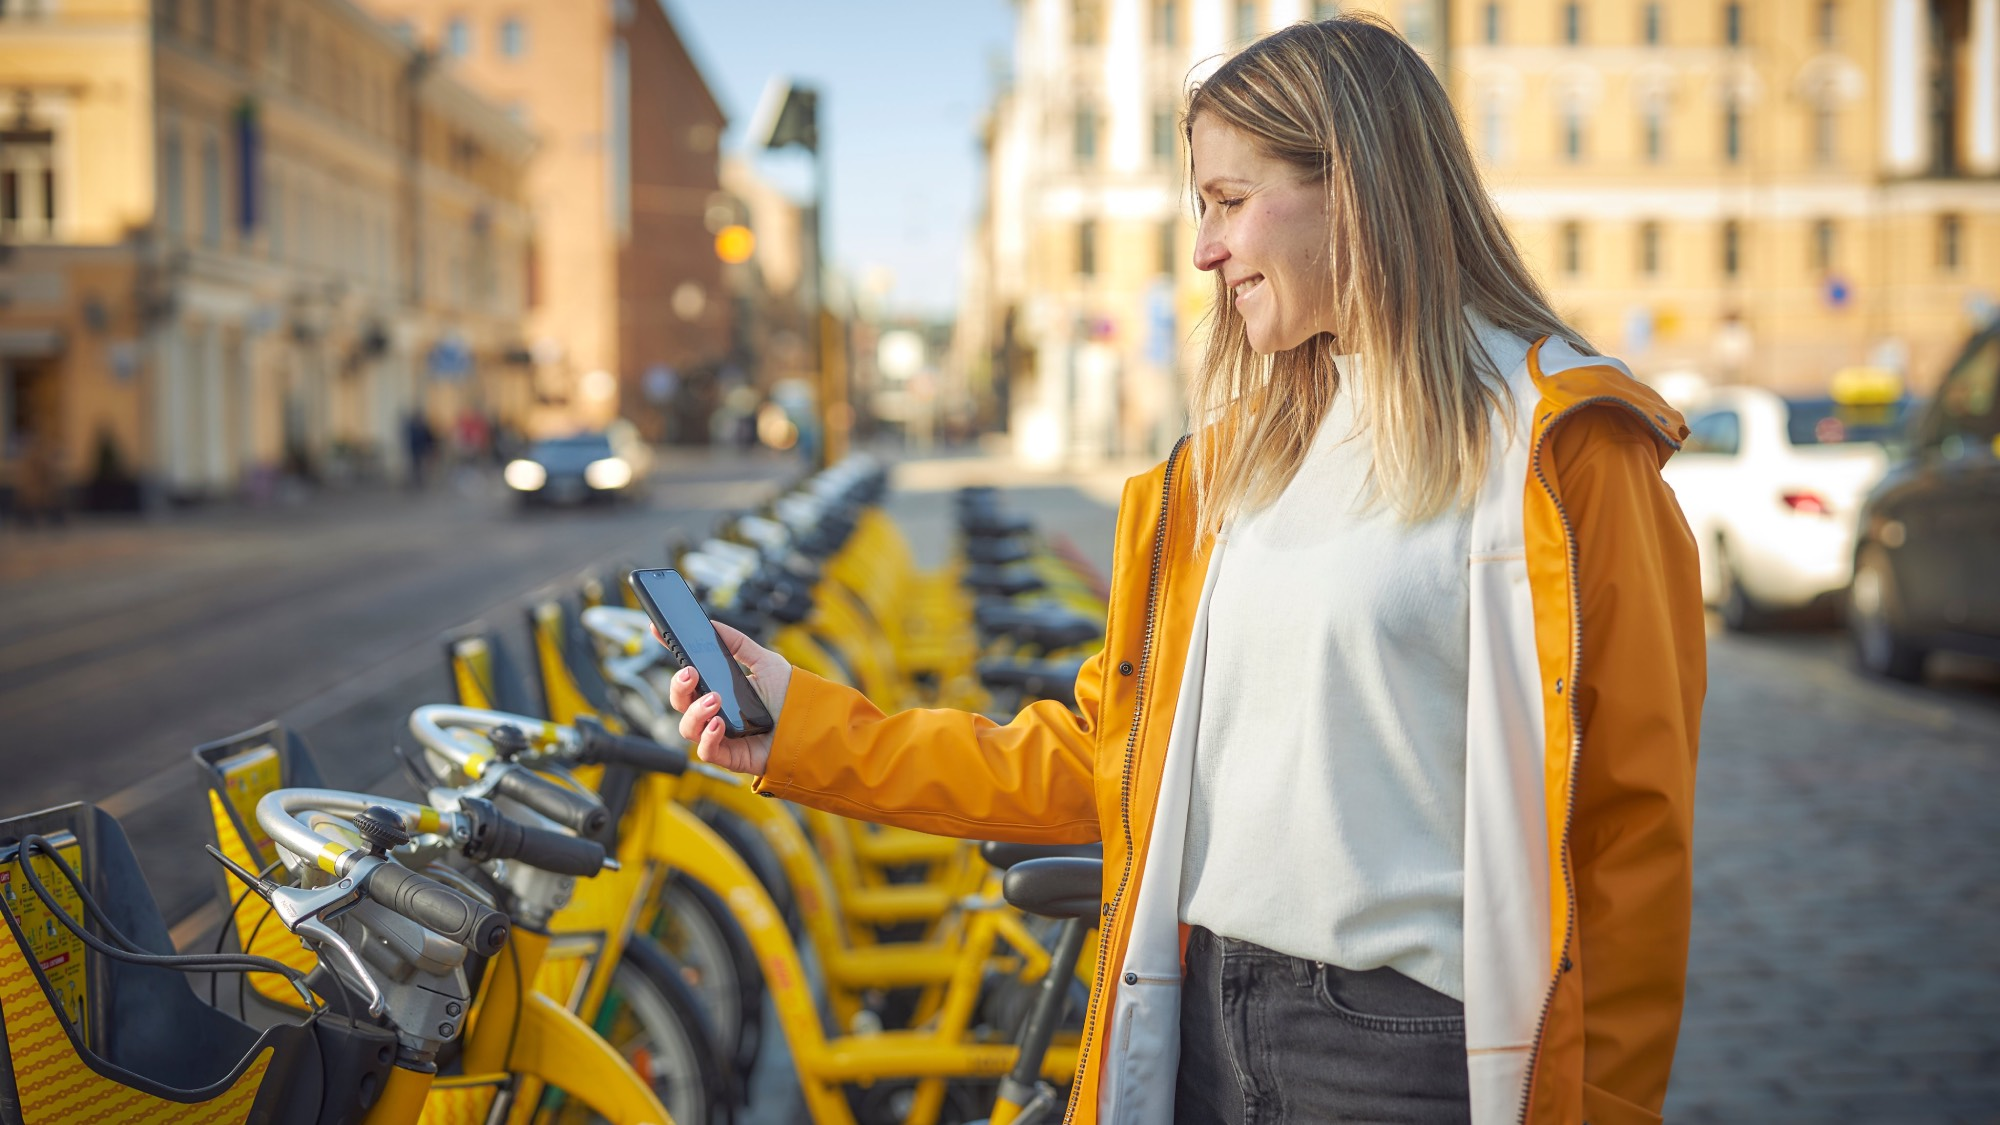 A woman unlocking a city bike with her phone